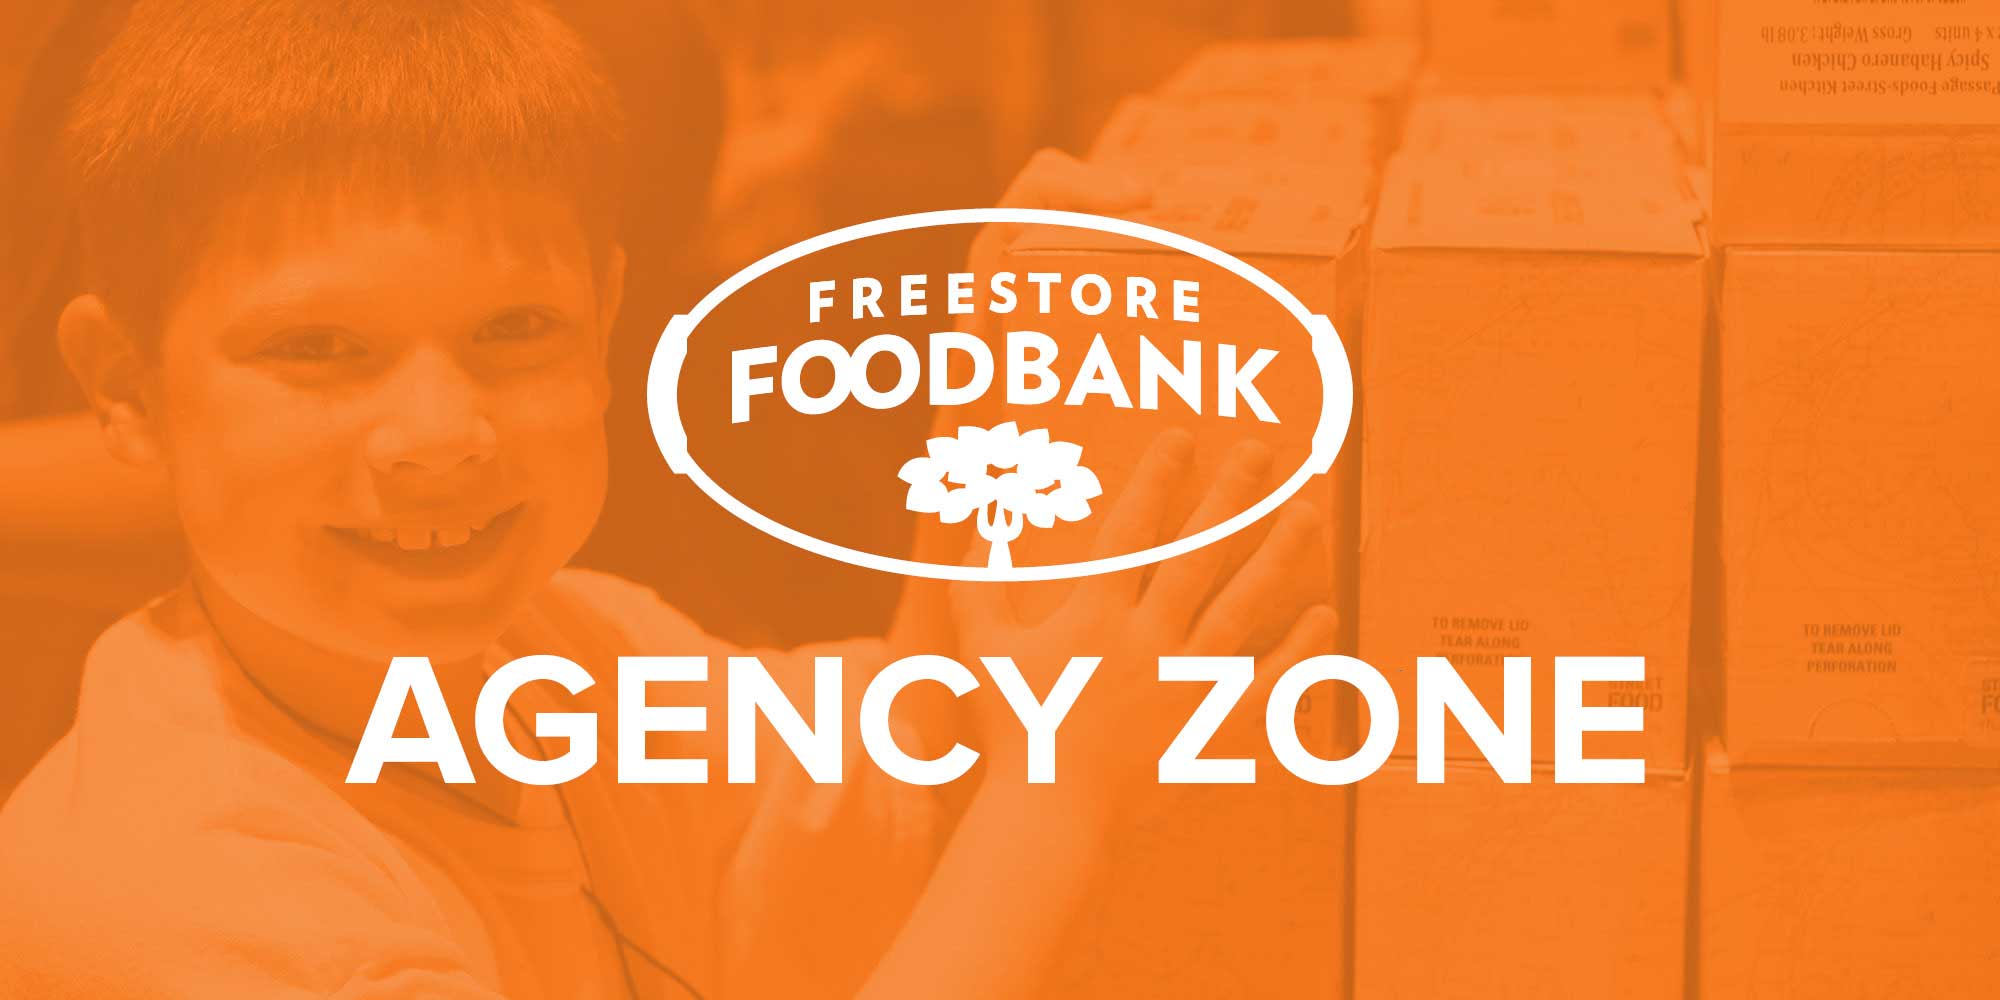 Become an Agency for Freestore Foodbank